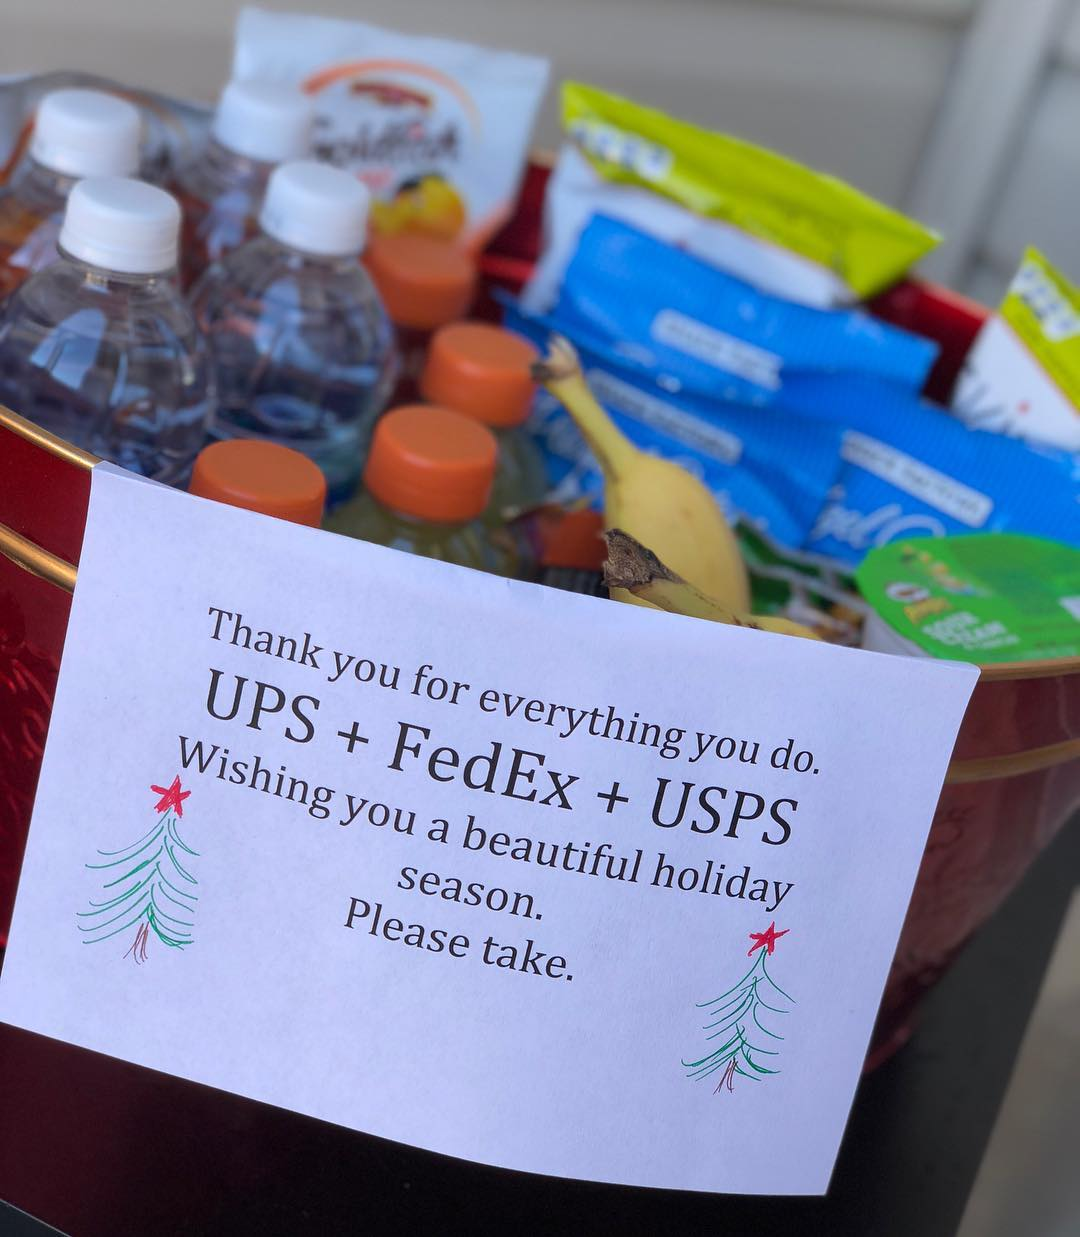 Thank you gift idea for your postal carriers and package delivery people via Danielle Elliott Smith